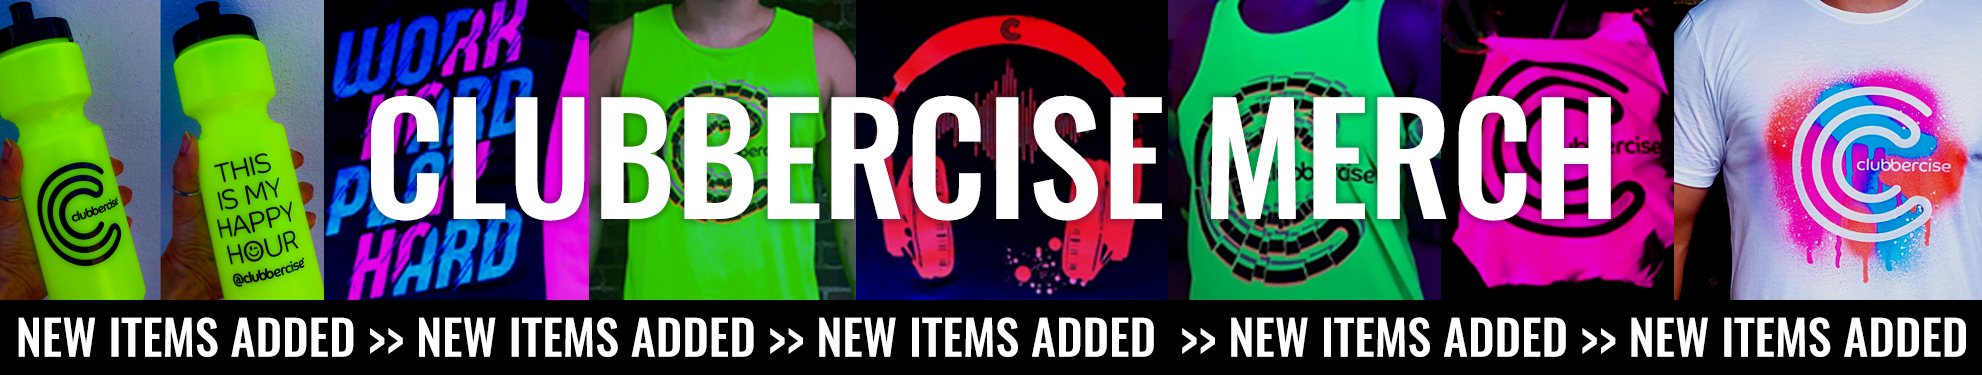 Clubbercise Website MerchBanner Aug19